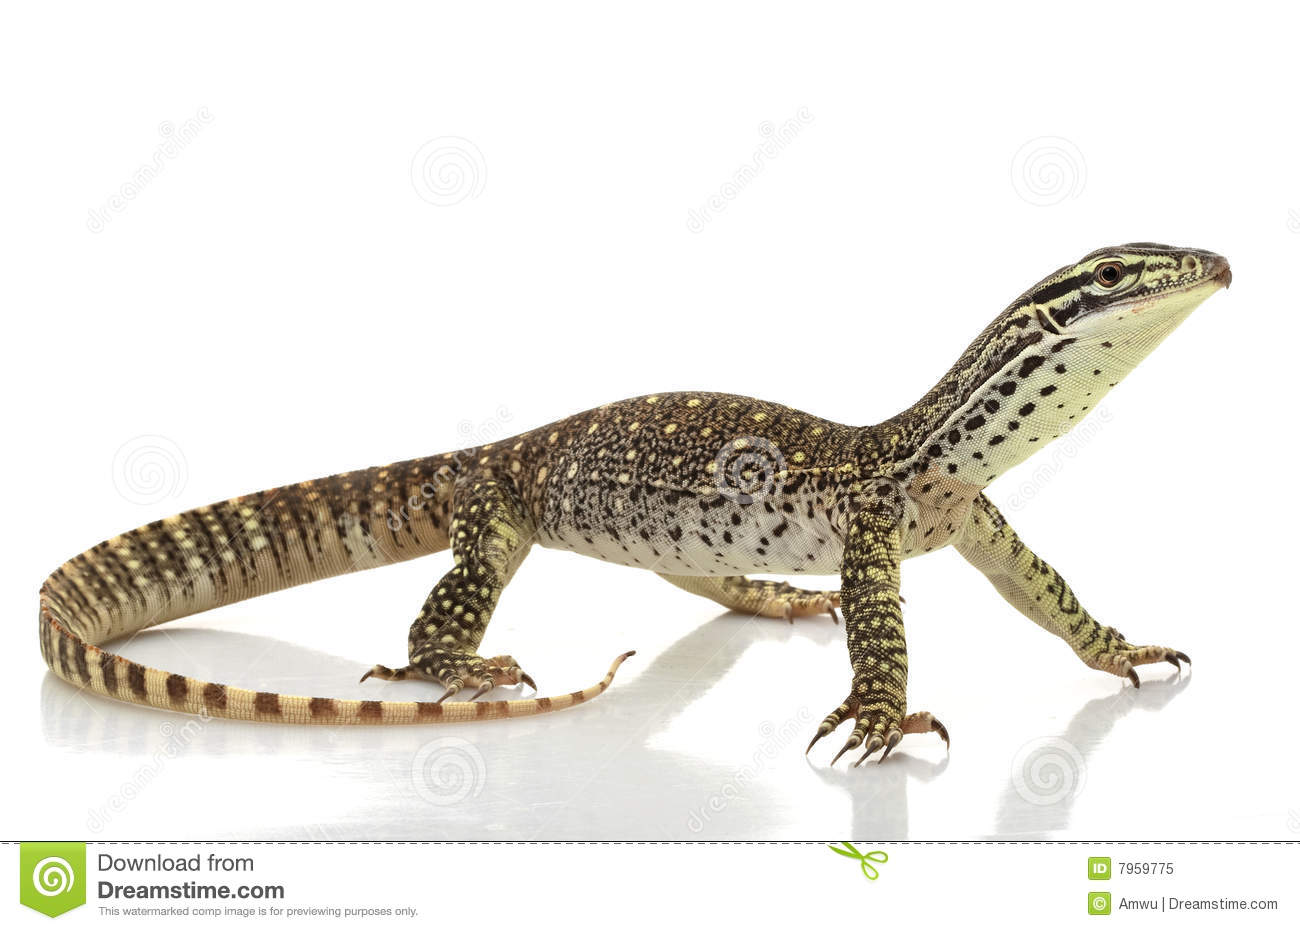 Monitor Lizard clipart #8, Download drawings